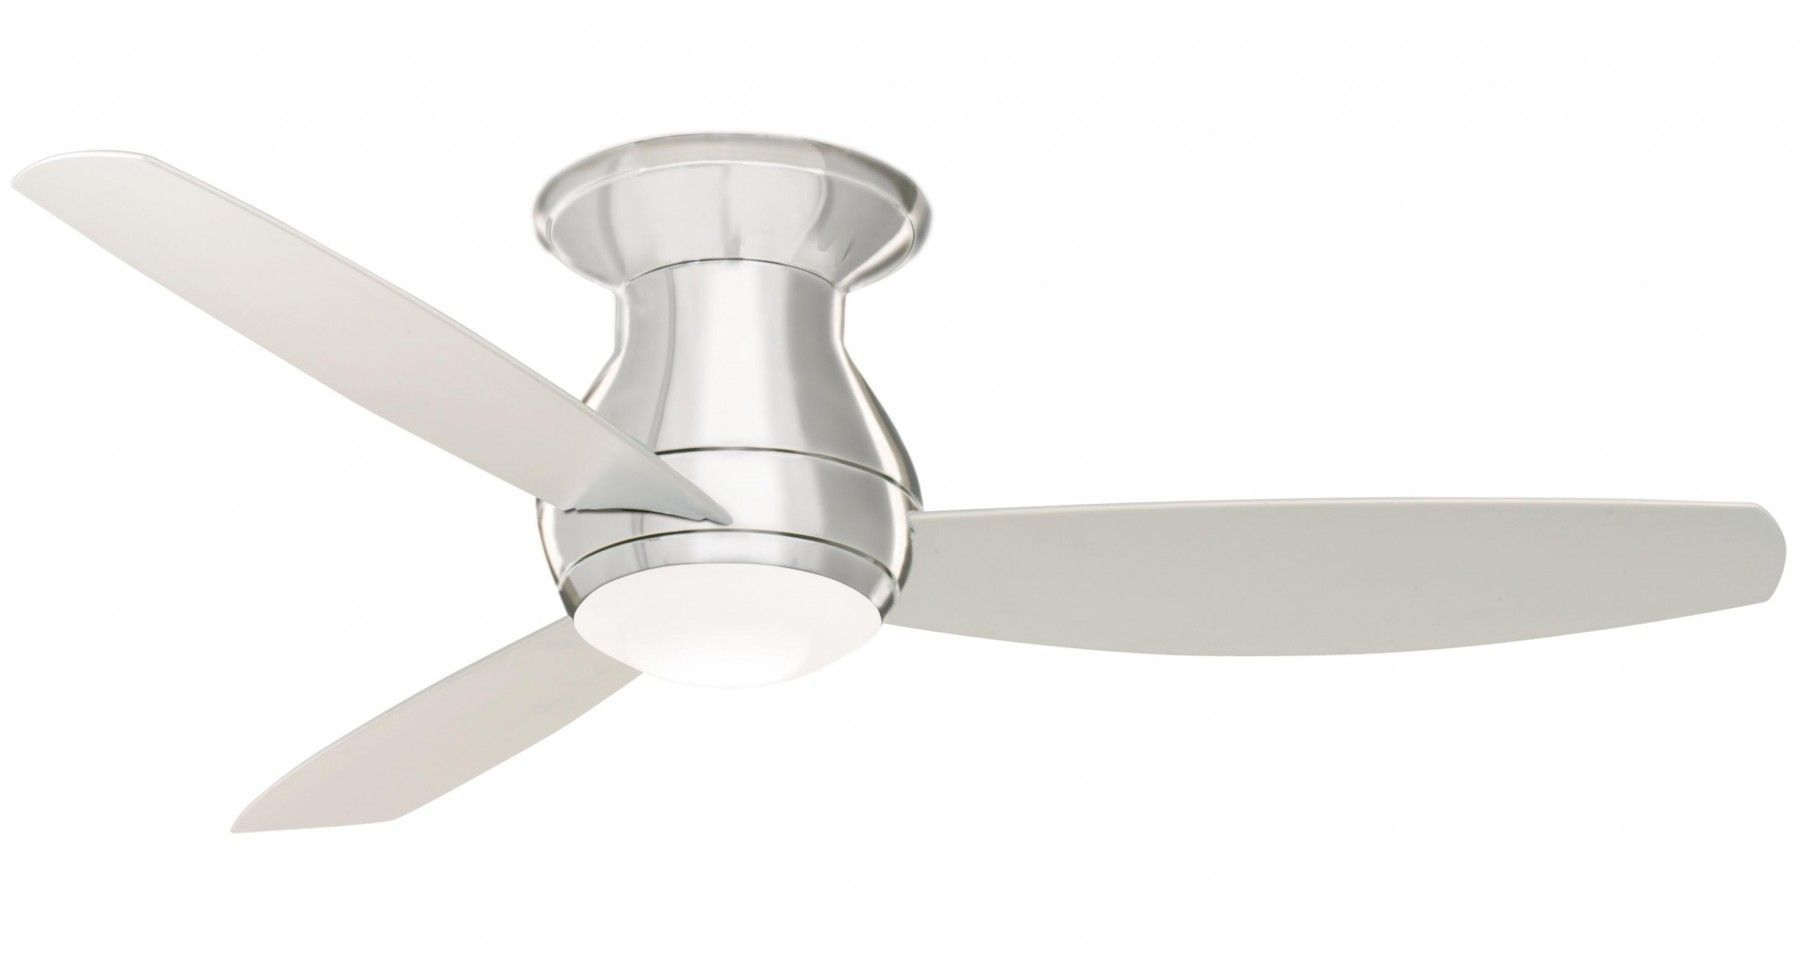 Emerson Curva Sky 52 LED Ceiling Fan Model CF153LBS in Brushed Steel with Curva Brushed Steel Finished ABS Plastic All Weather blades, #Abs #Blades #Brushed #ceiling #CF153LBS #Curva #Emerson #Fan #Finished #LED #Model #plastic #Sky #Steel #Weather